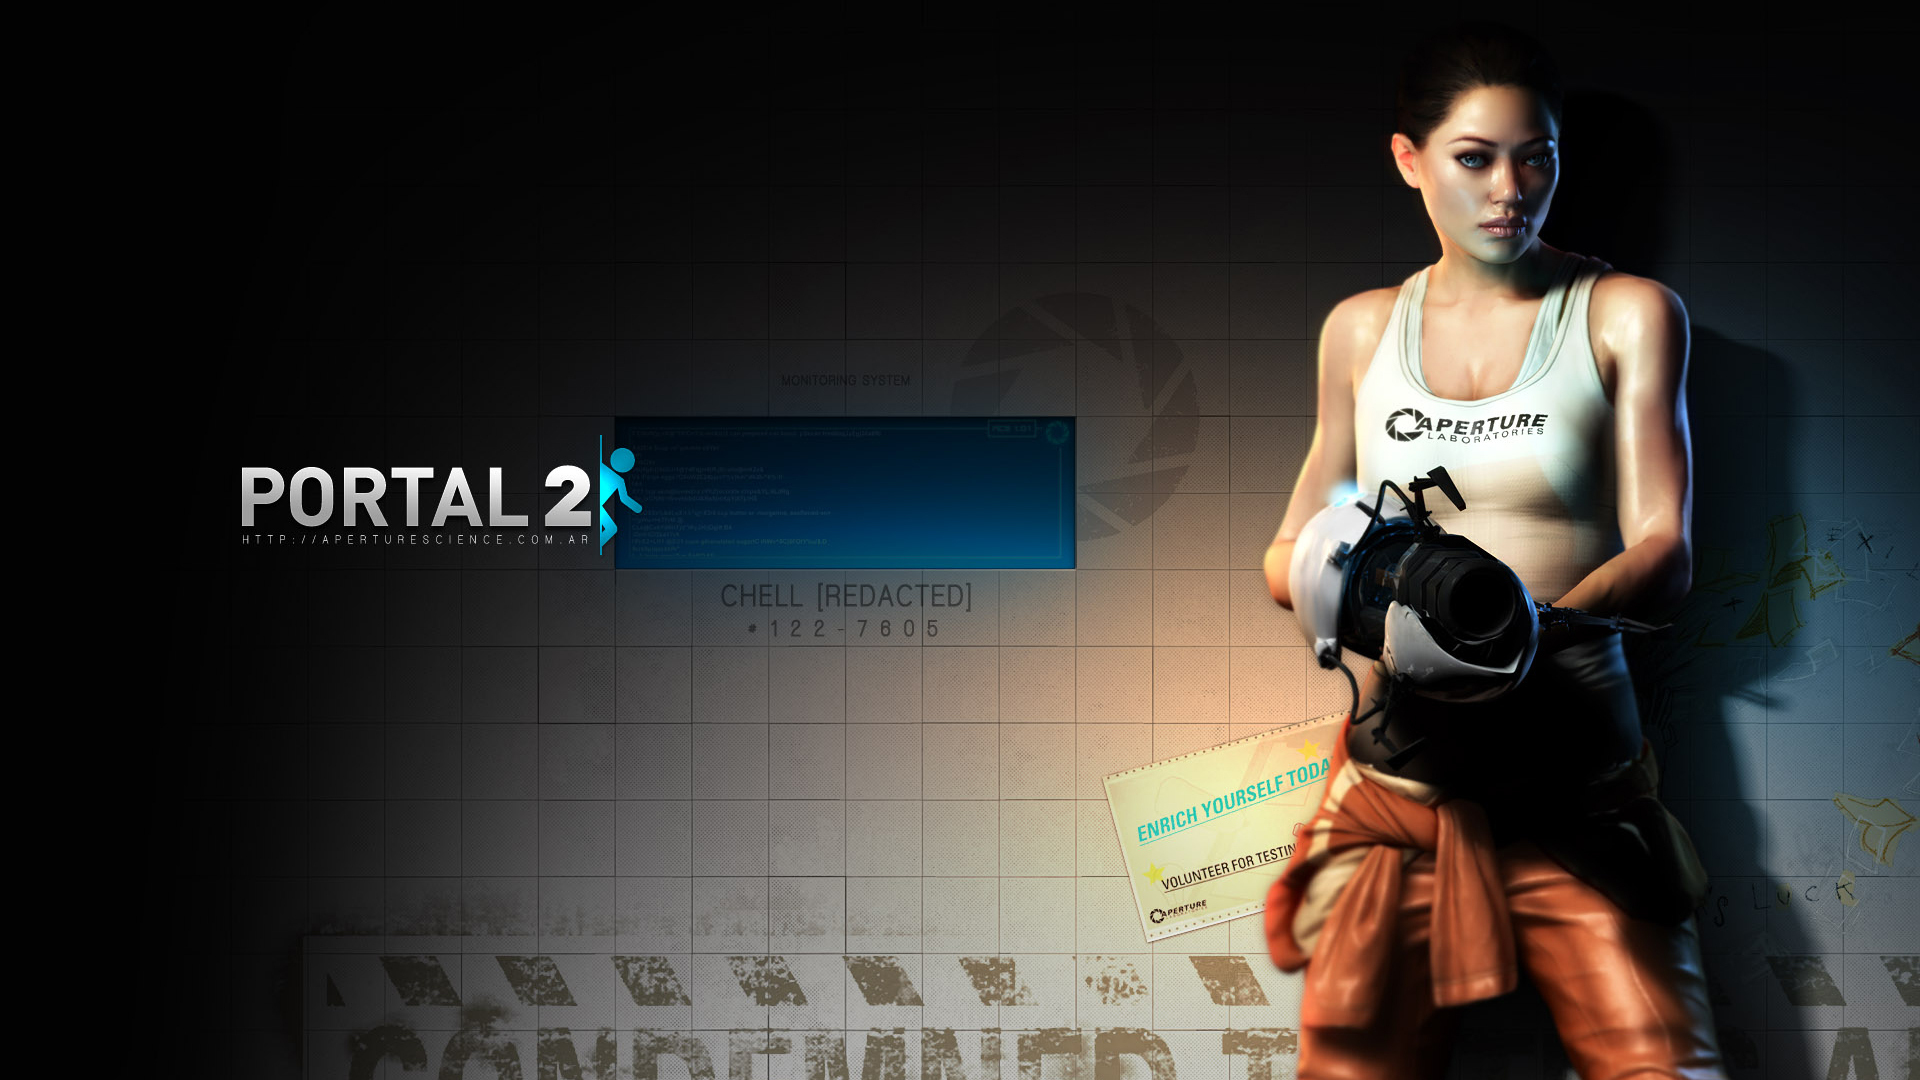 Portal 2 Aperture Laboratories